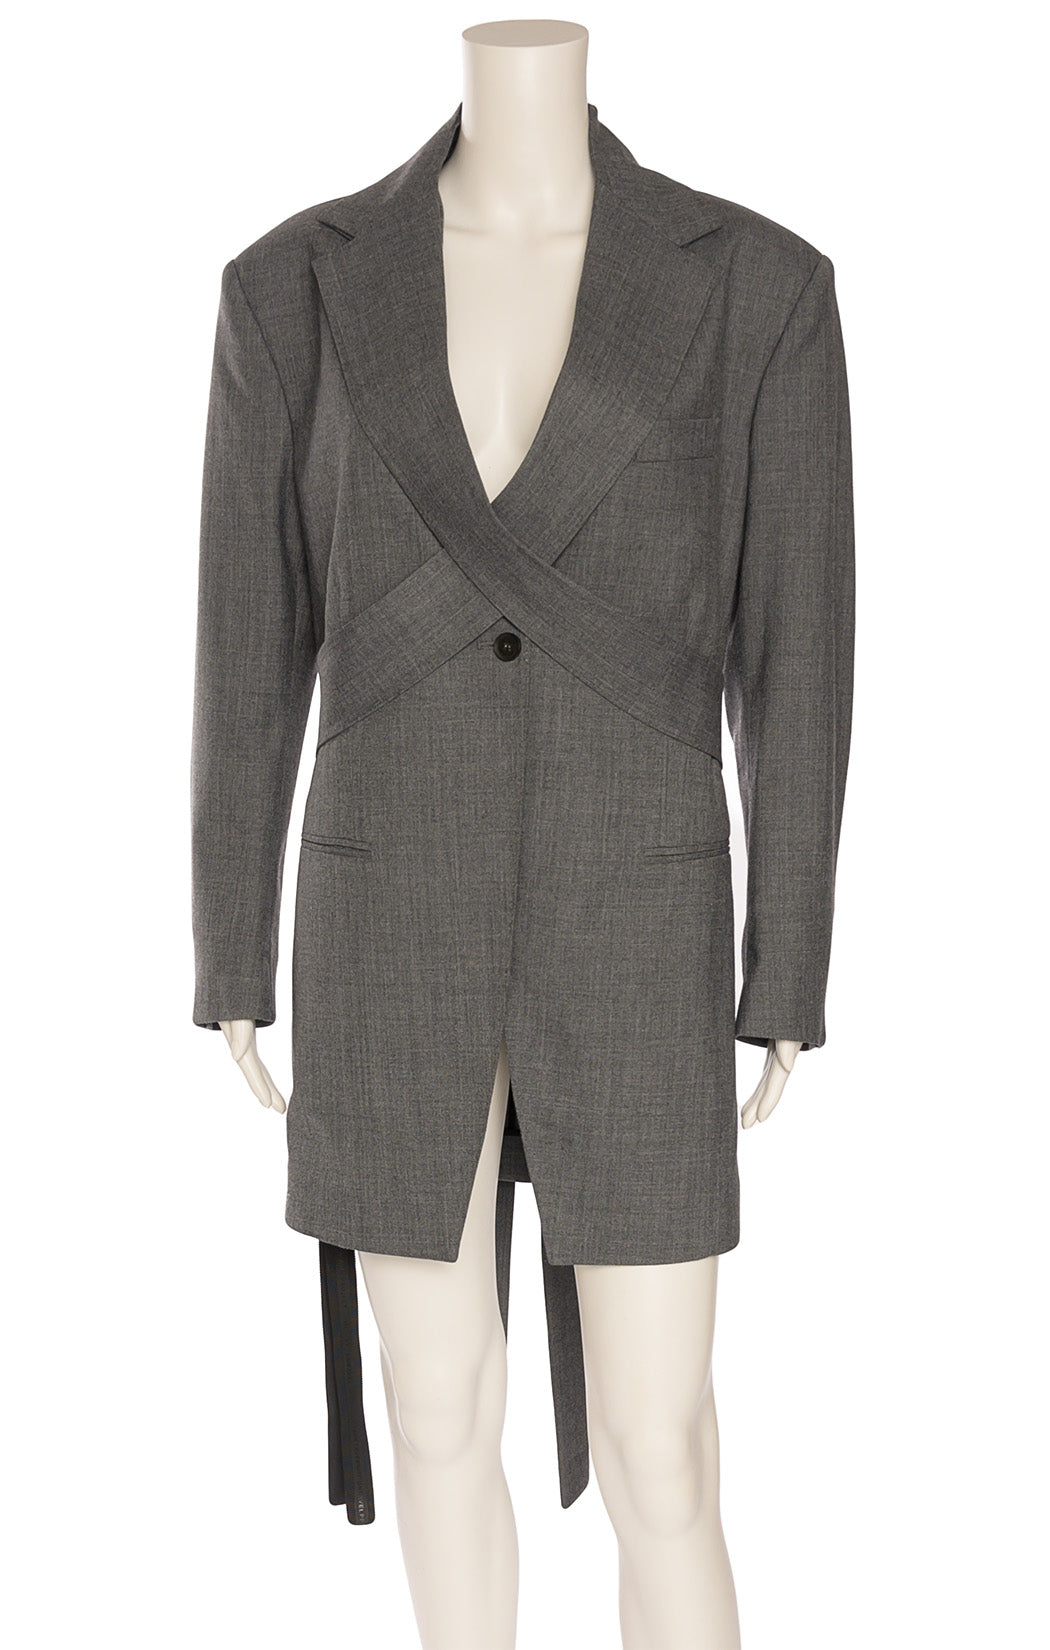 Gray single breasted long sleeve jacket with wrap around belt at top, slit front pockets, top flap pocket with shoulder pads